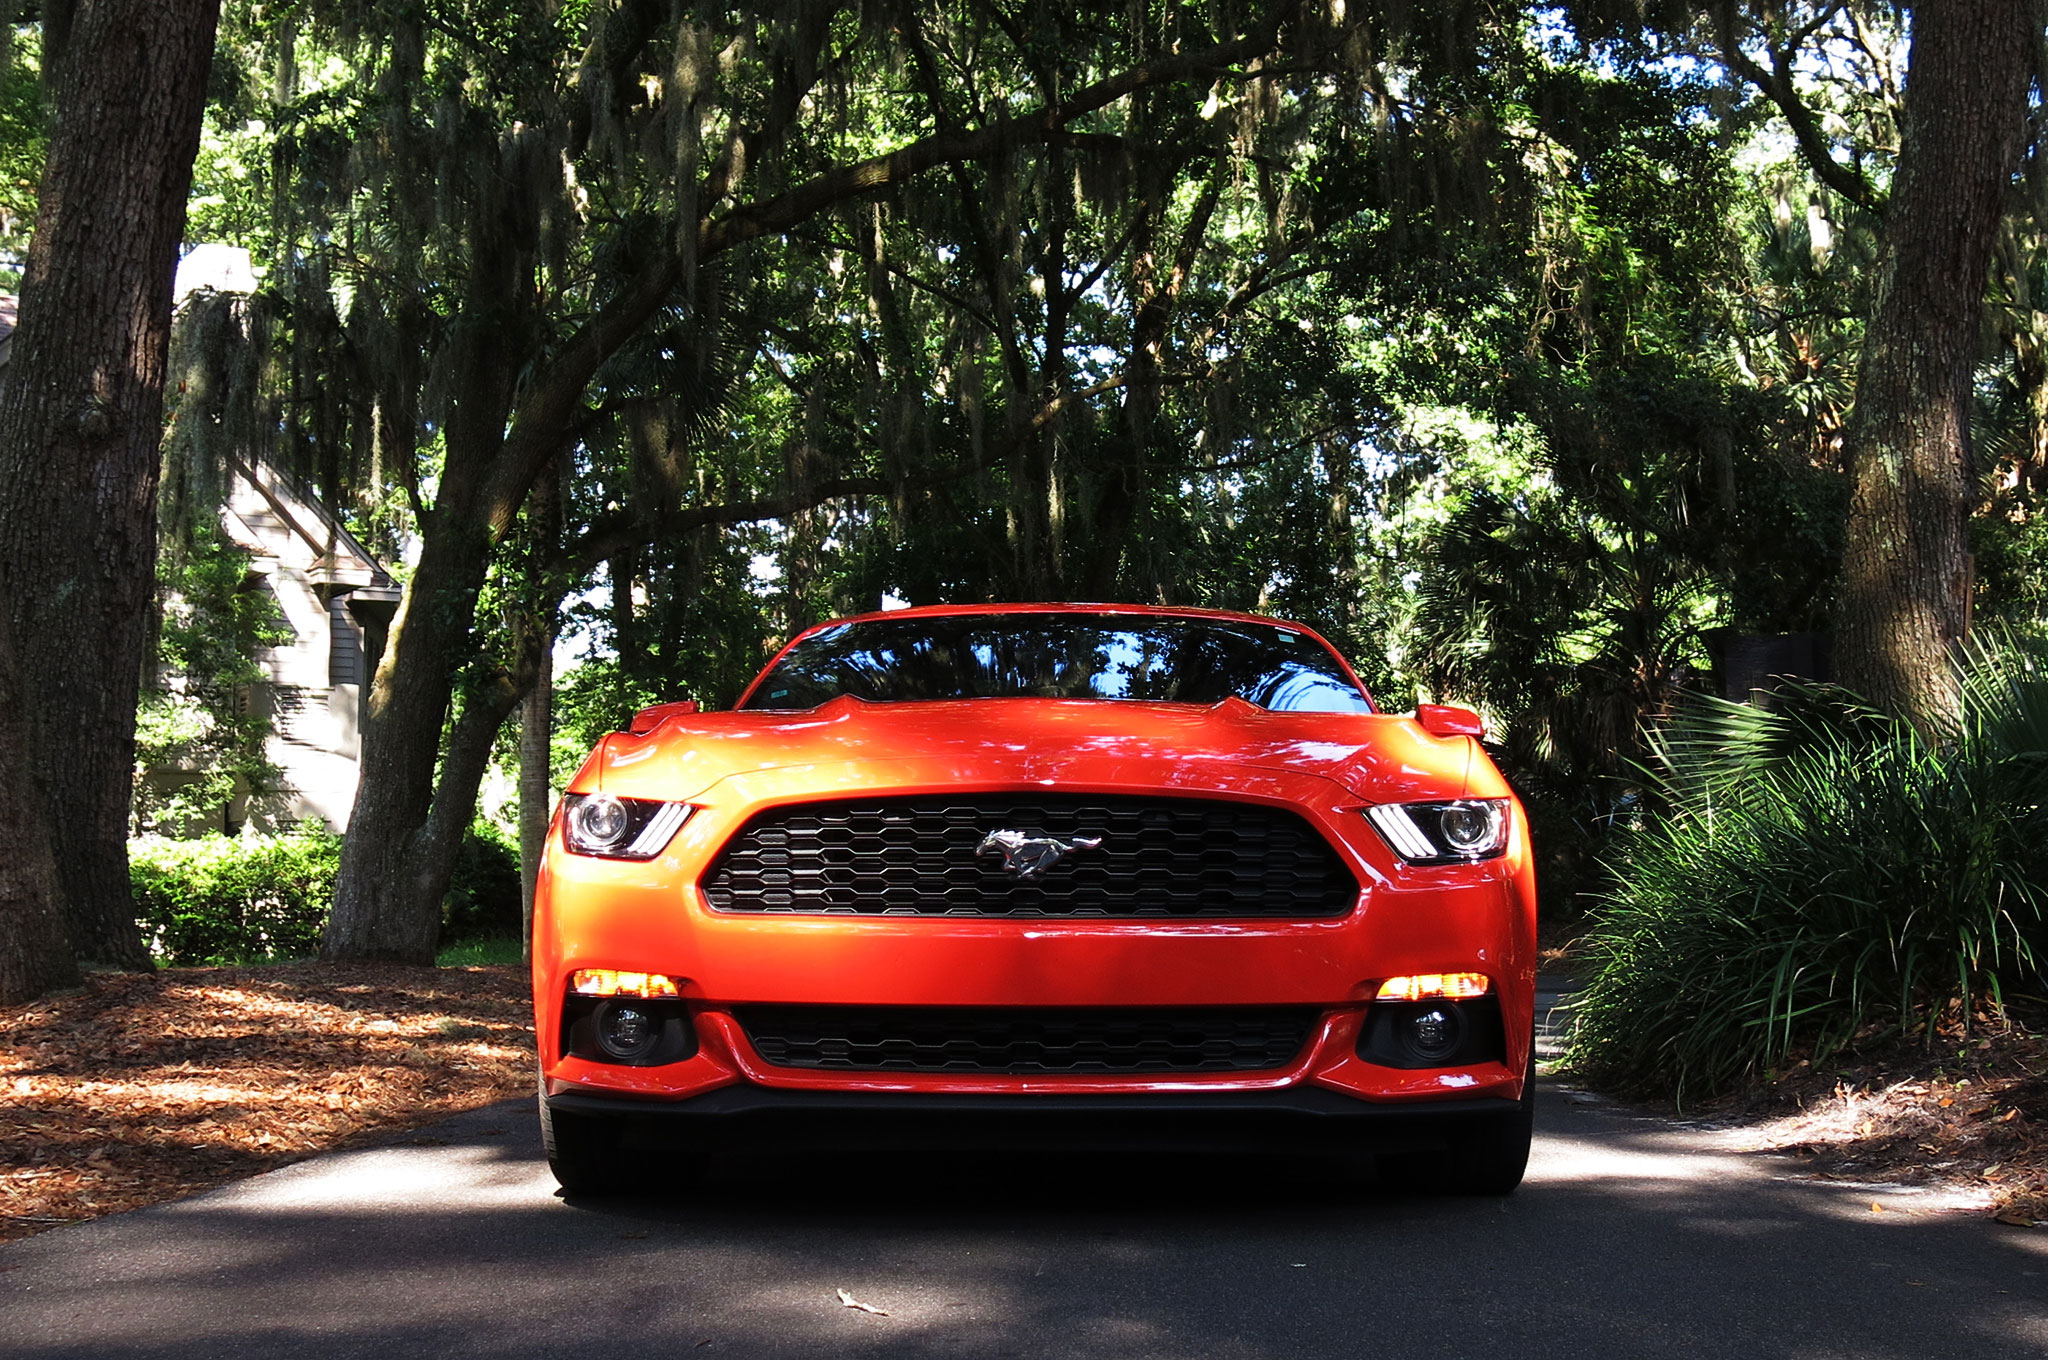 Hilton Head Toyota >> 2015 Ford Mustang EcoBoost - The Pony Rides the Dragon